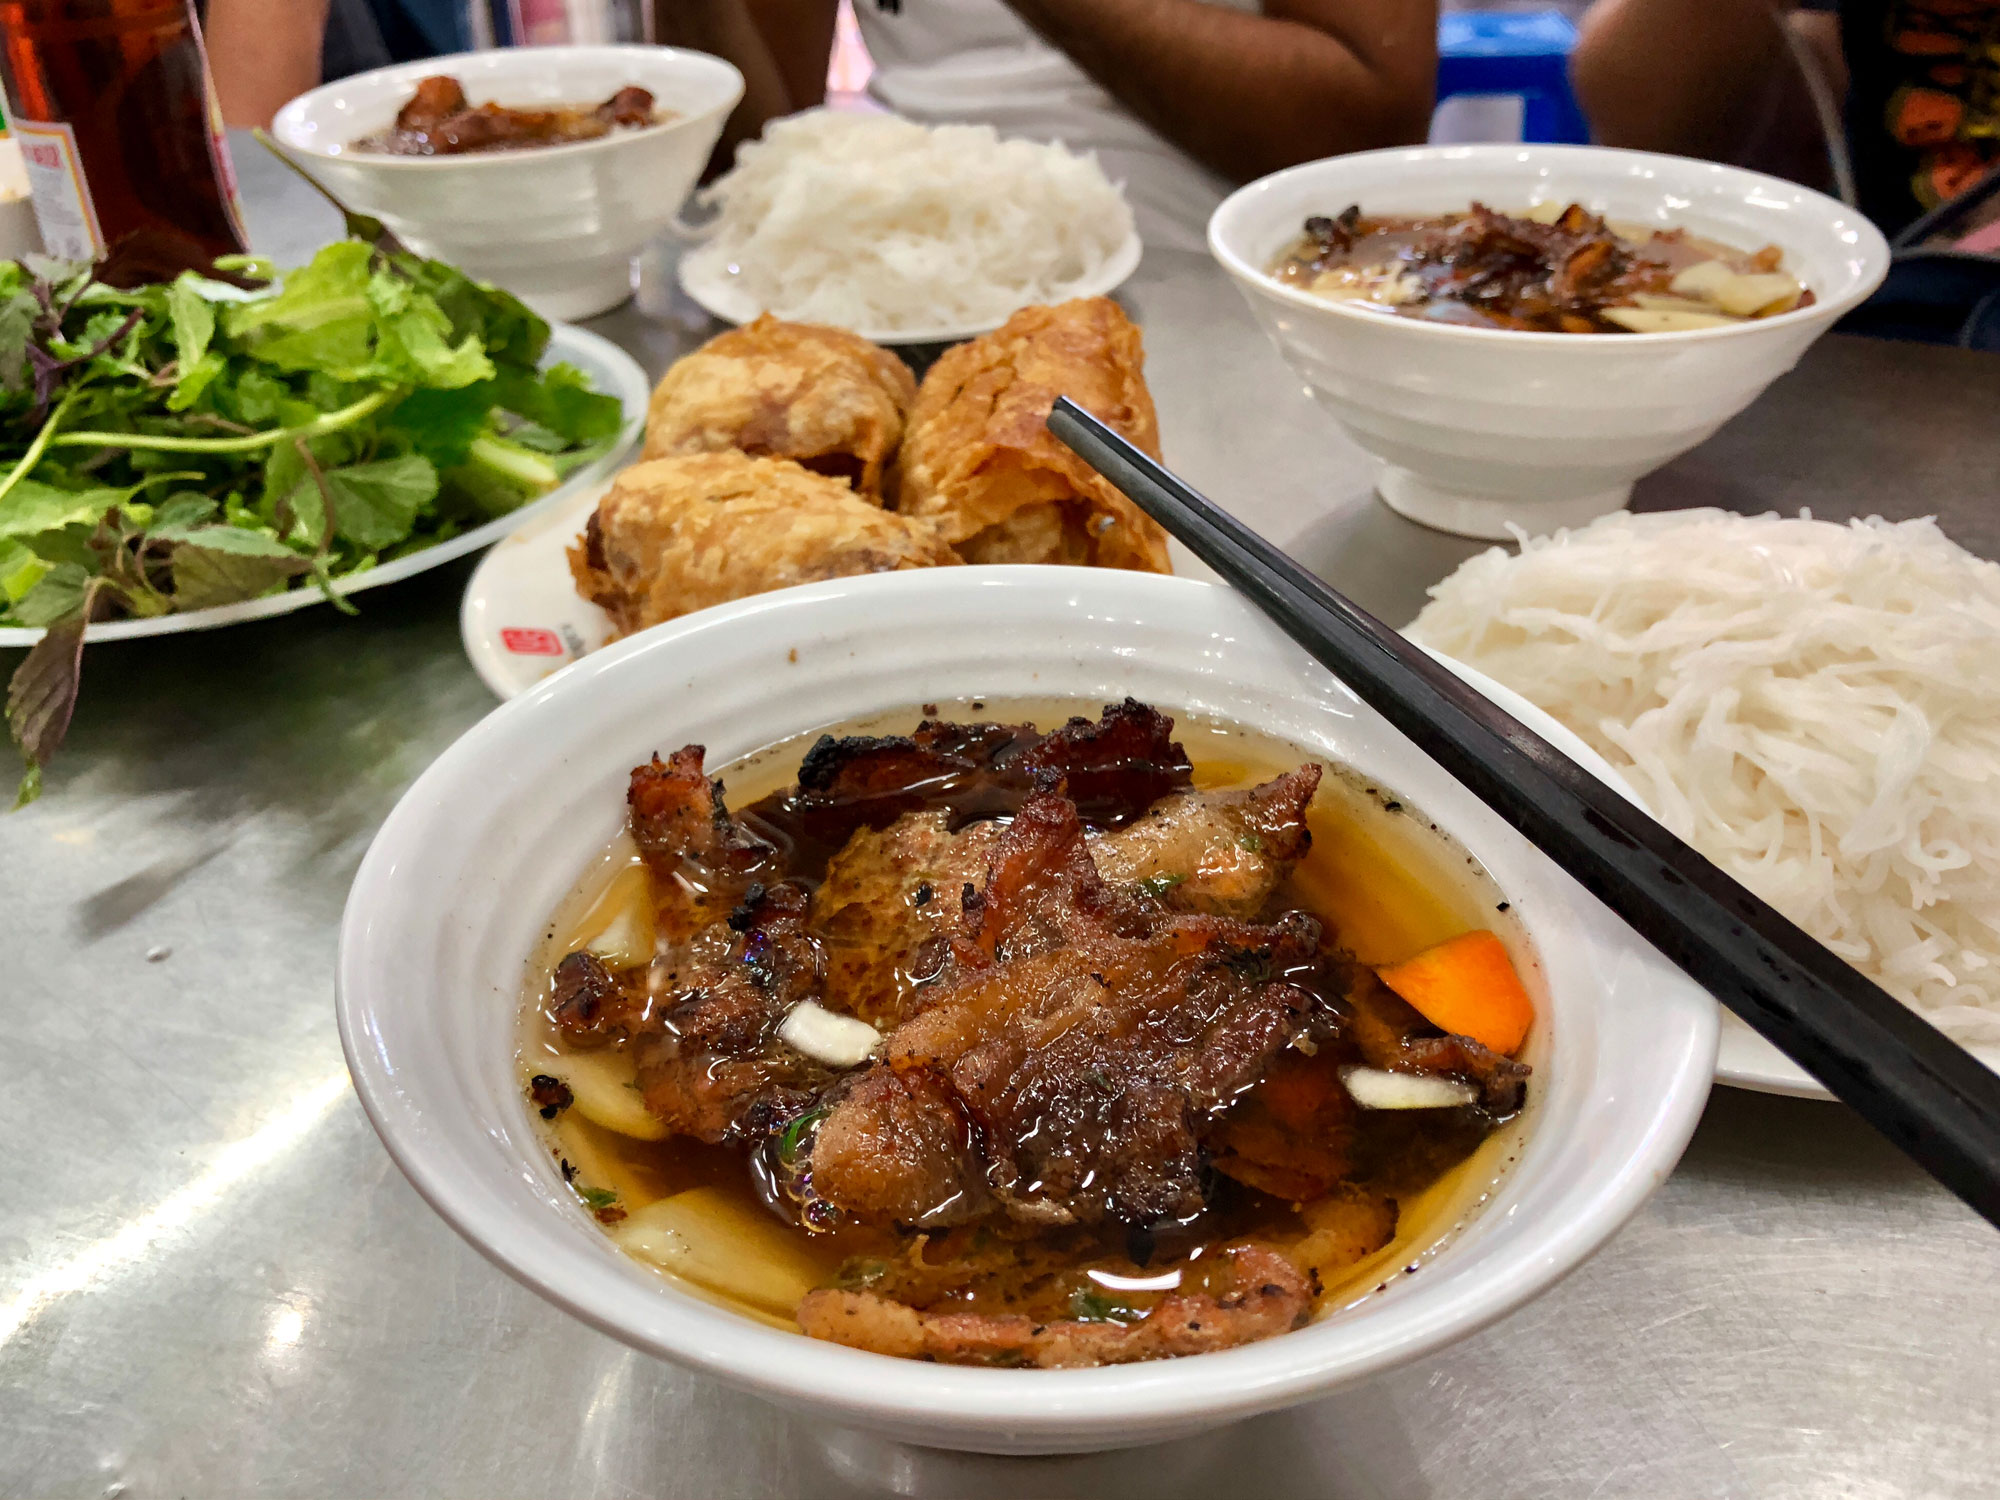 Bun Cha in a bowl with other foods in the backgorund.